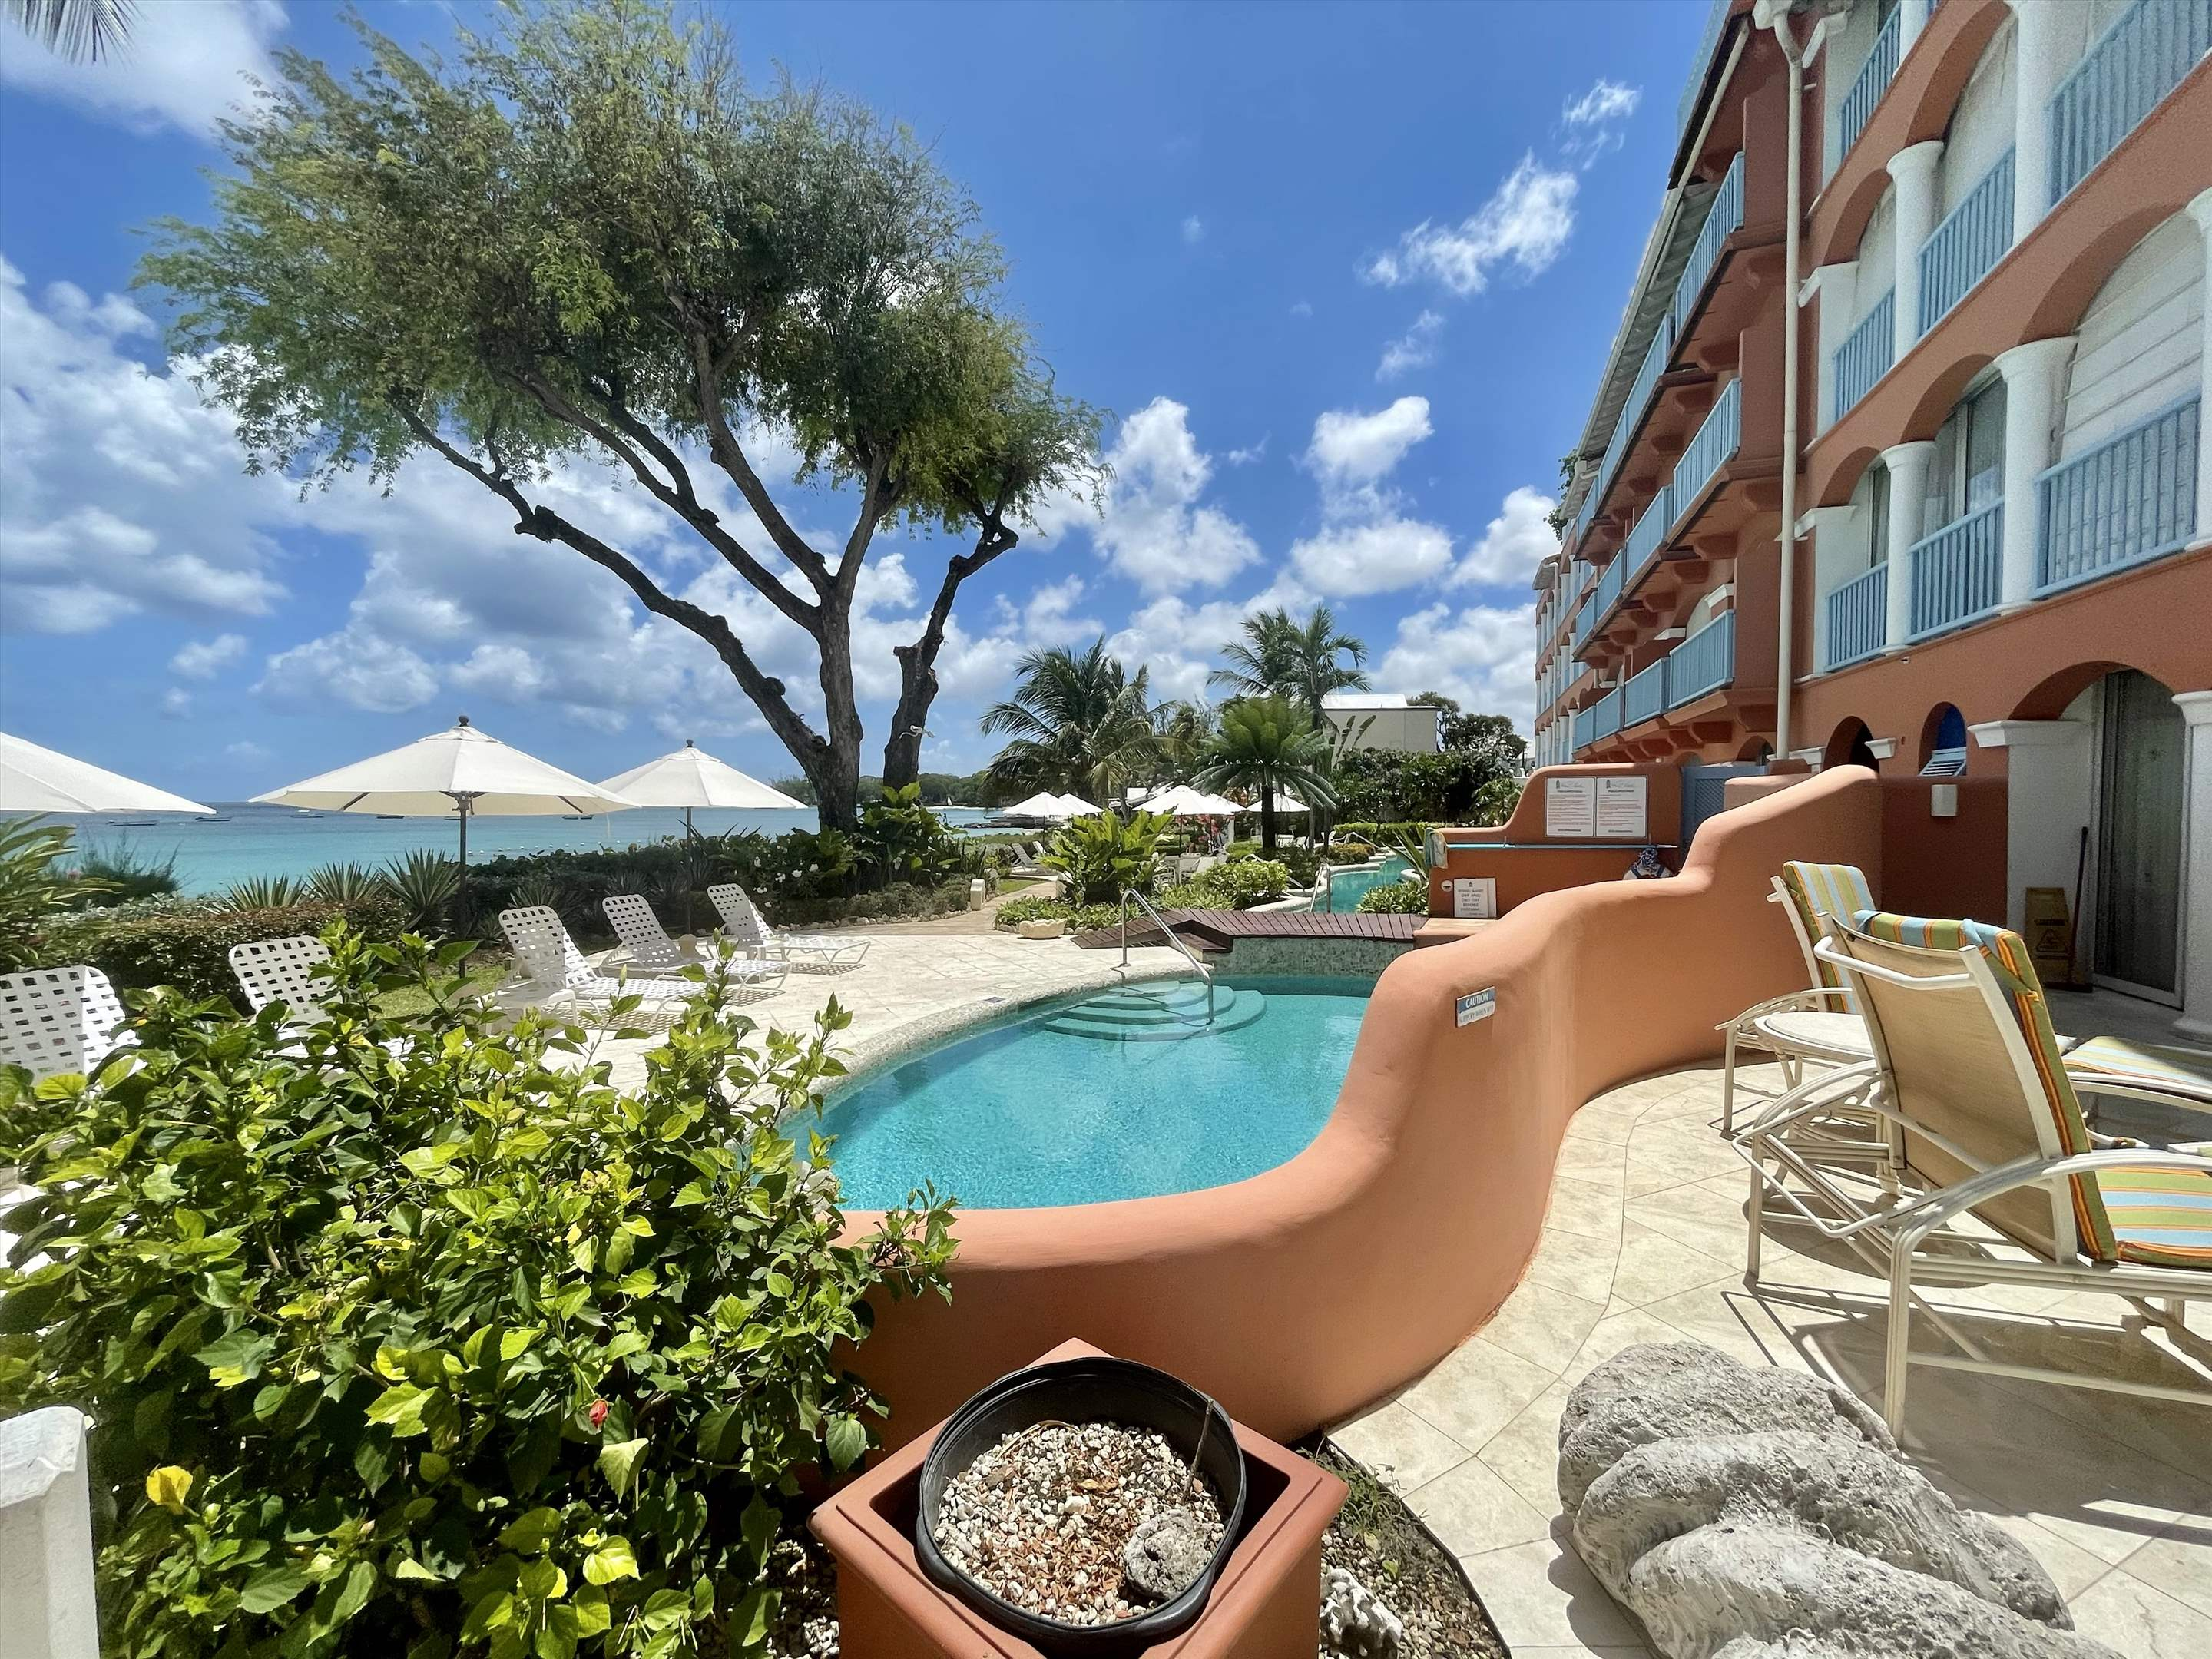 Villas on the Beach 101, 1 bedroom, 1 bedroom apartment in St. James & West Coast, Barbados Photo #4